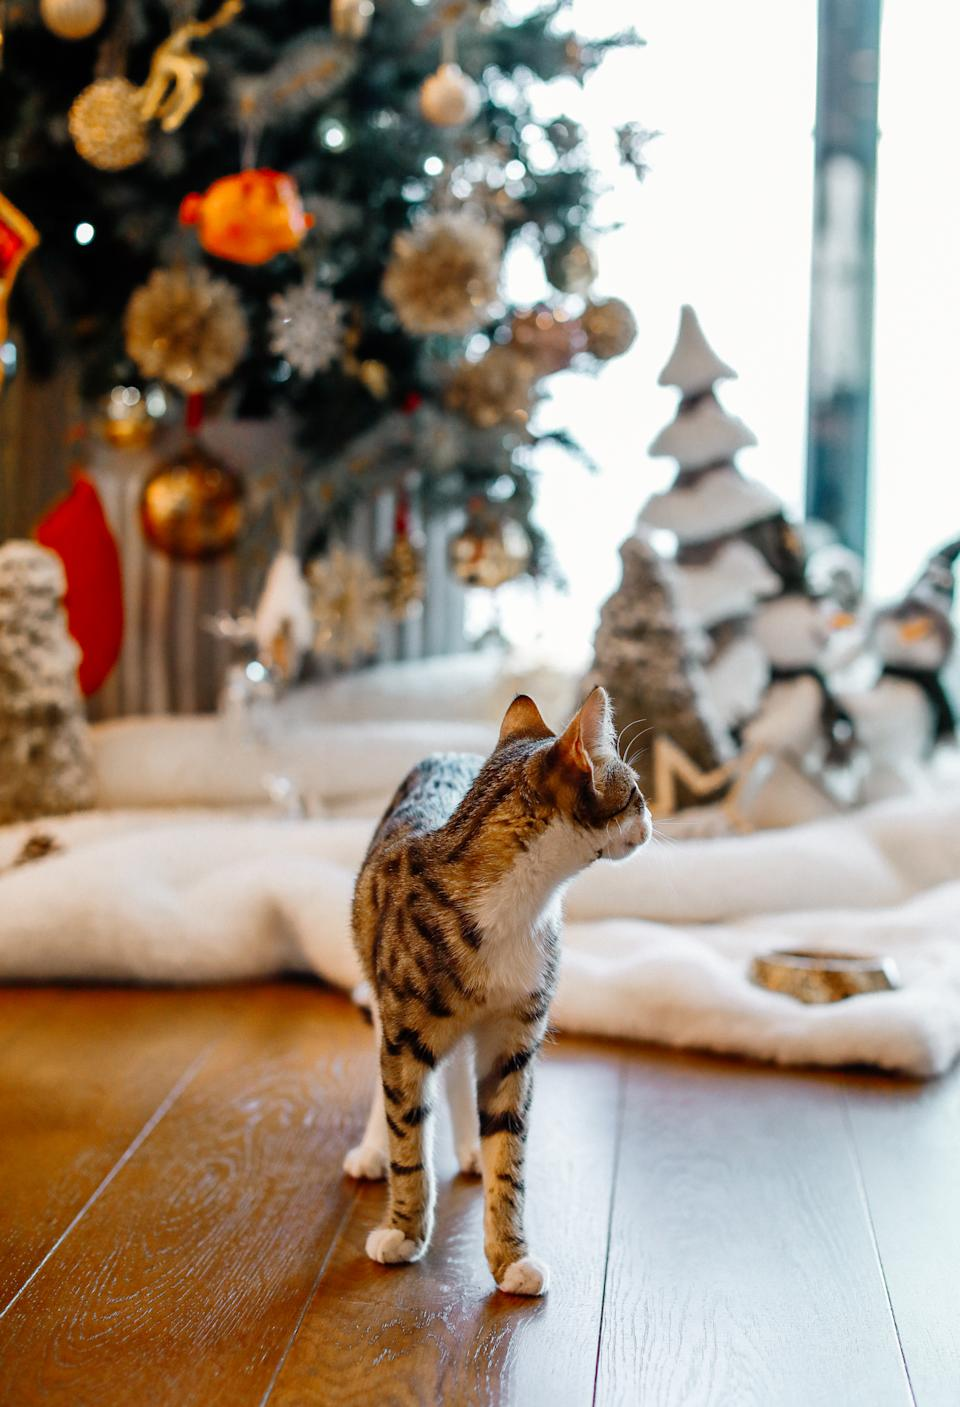 Adorable tabby cat sitting at christmas lights and wrapped gift boxes under christmas tree with red and gold baubles. Cute Maine Coon relaxing in festive room. Merry Christmas!